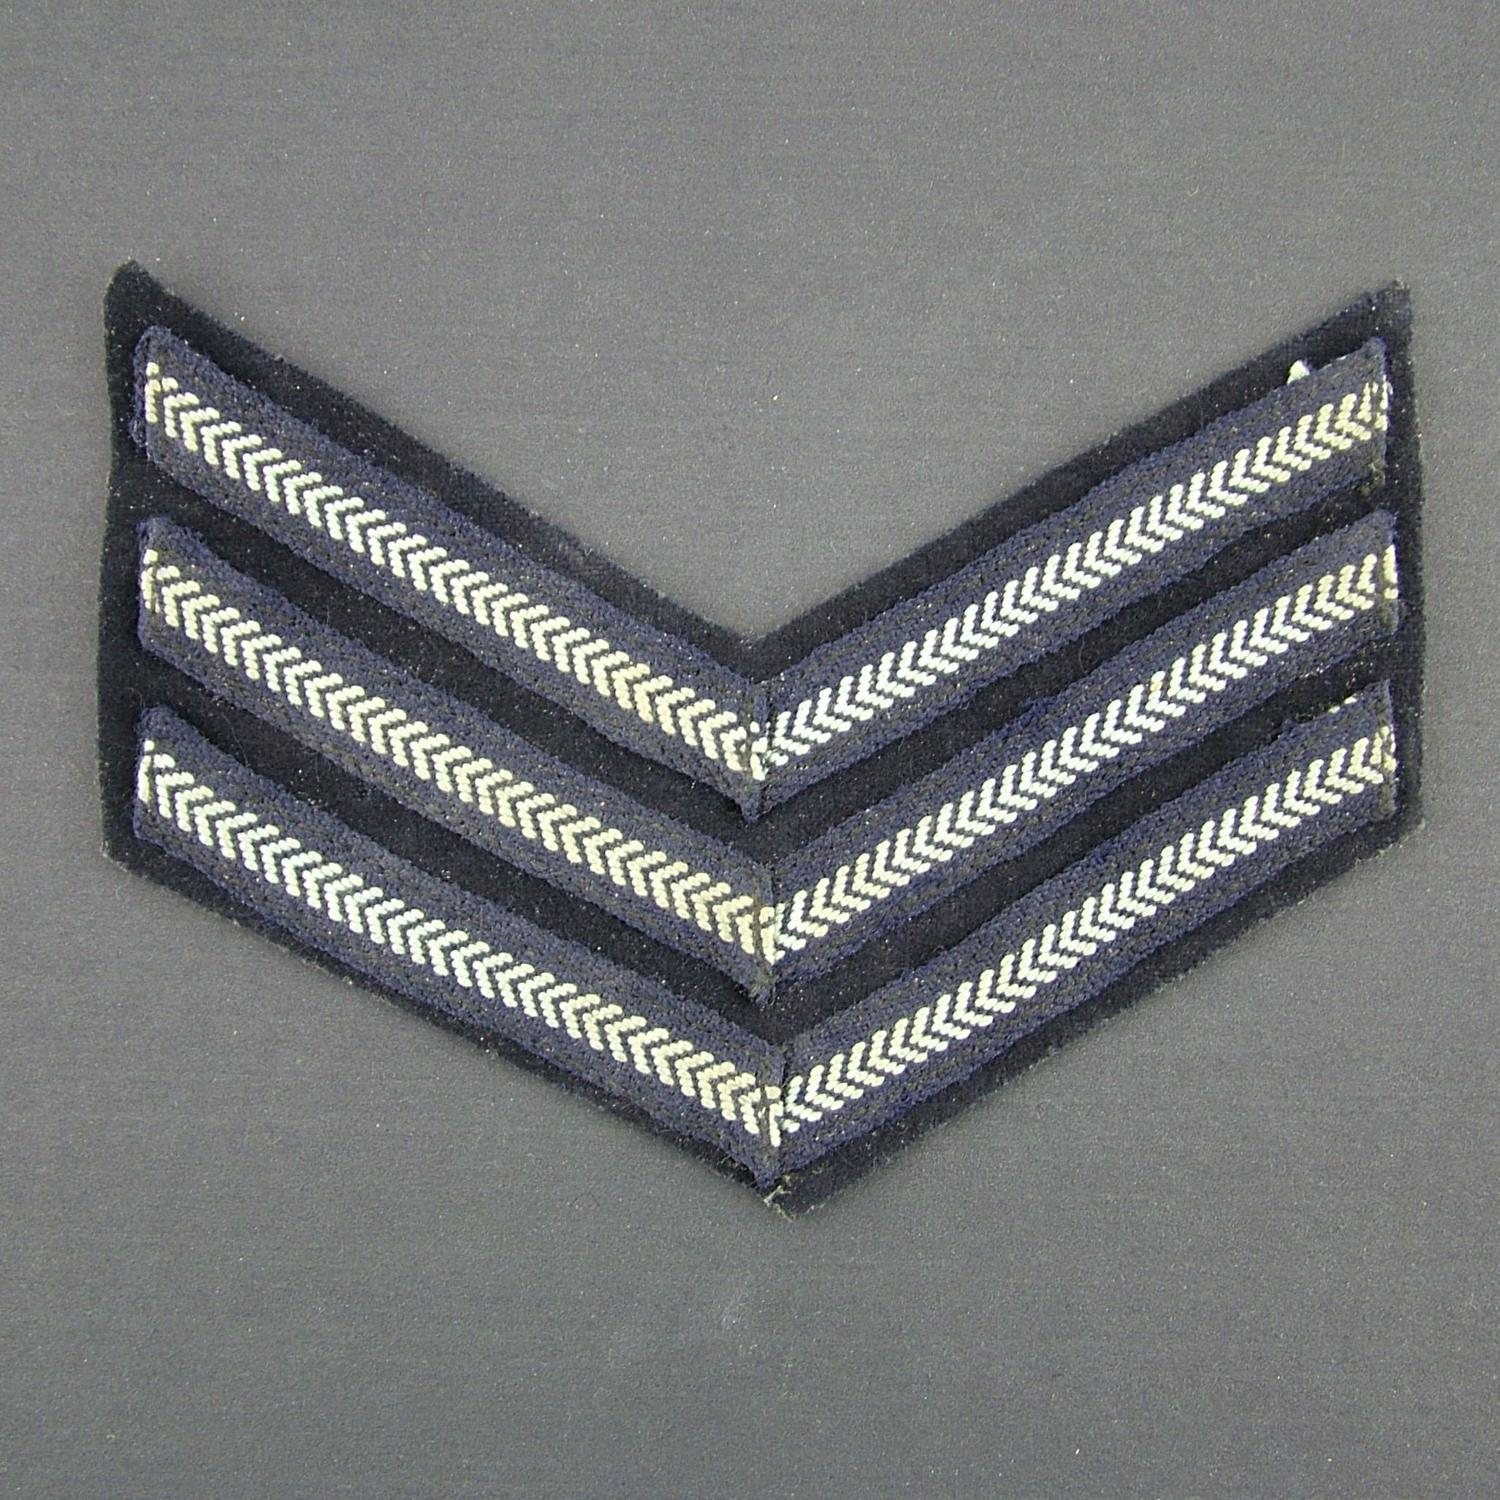 RAF sergeant stripe, single